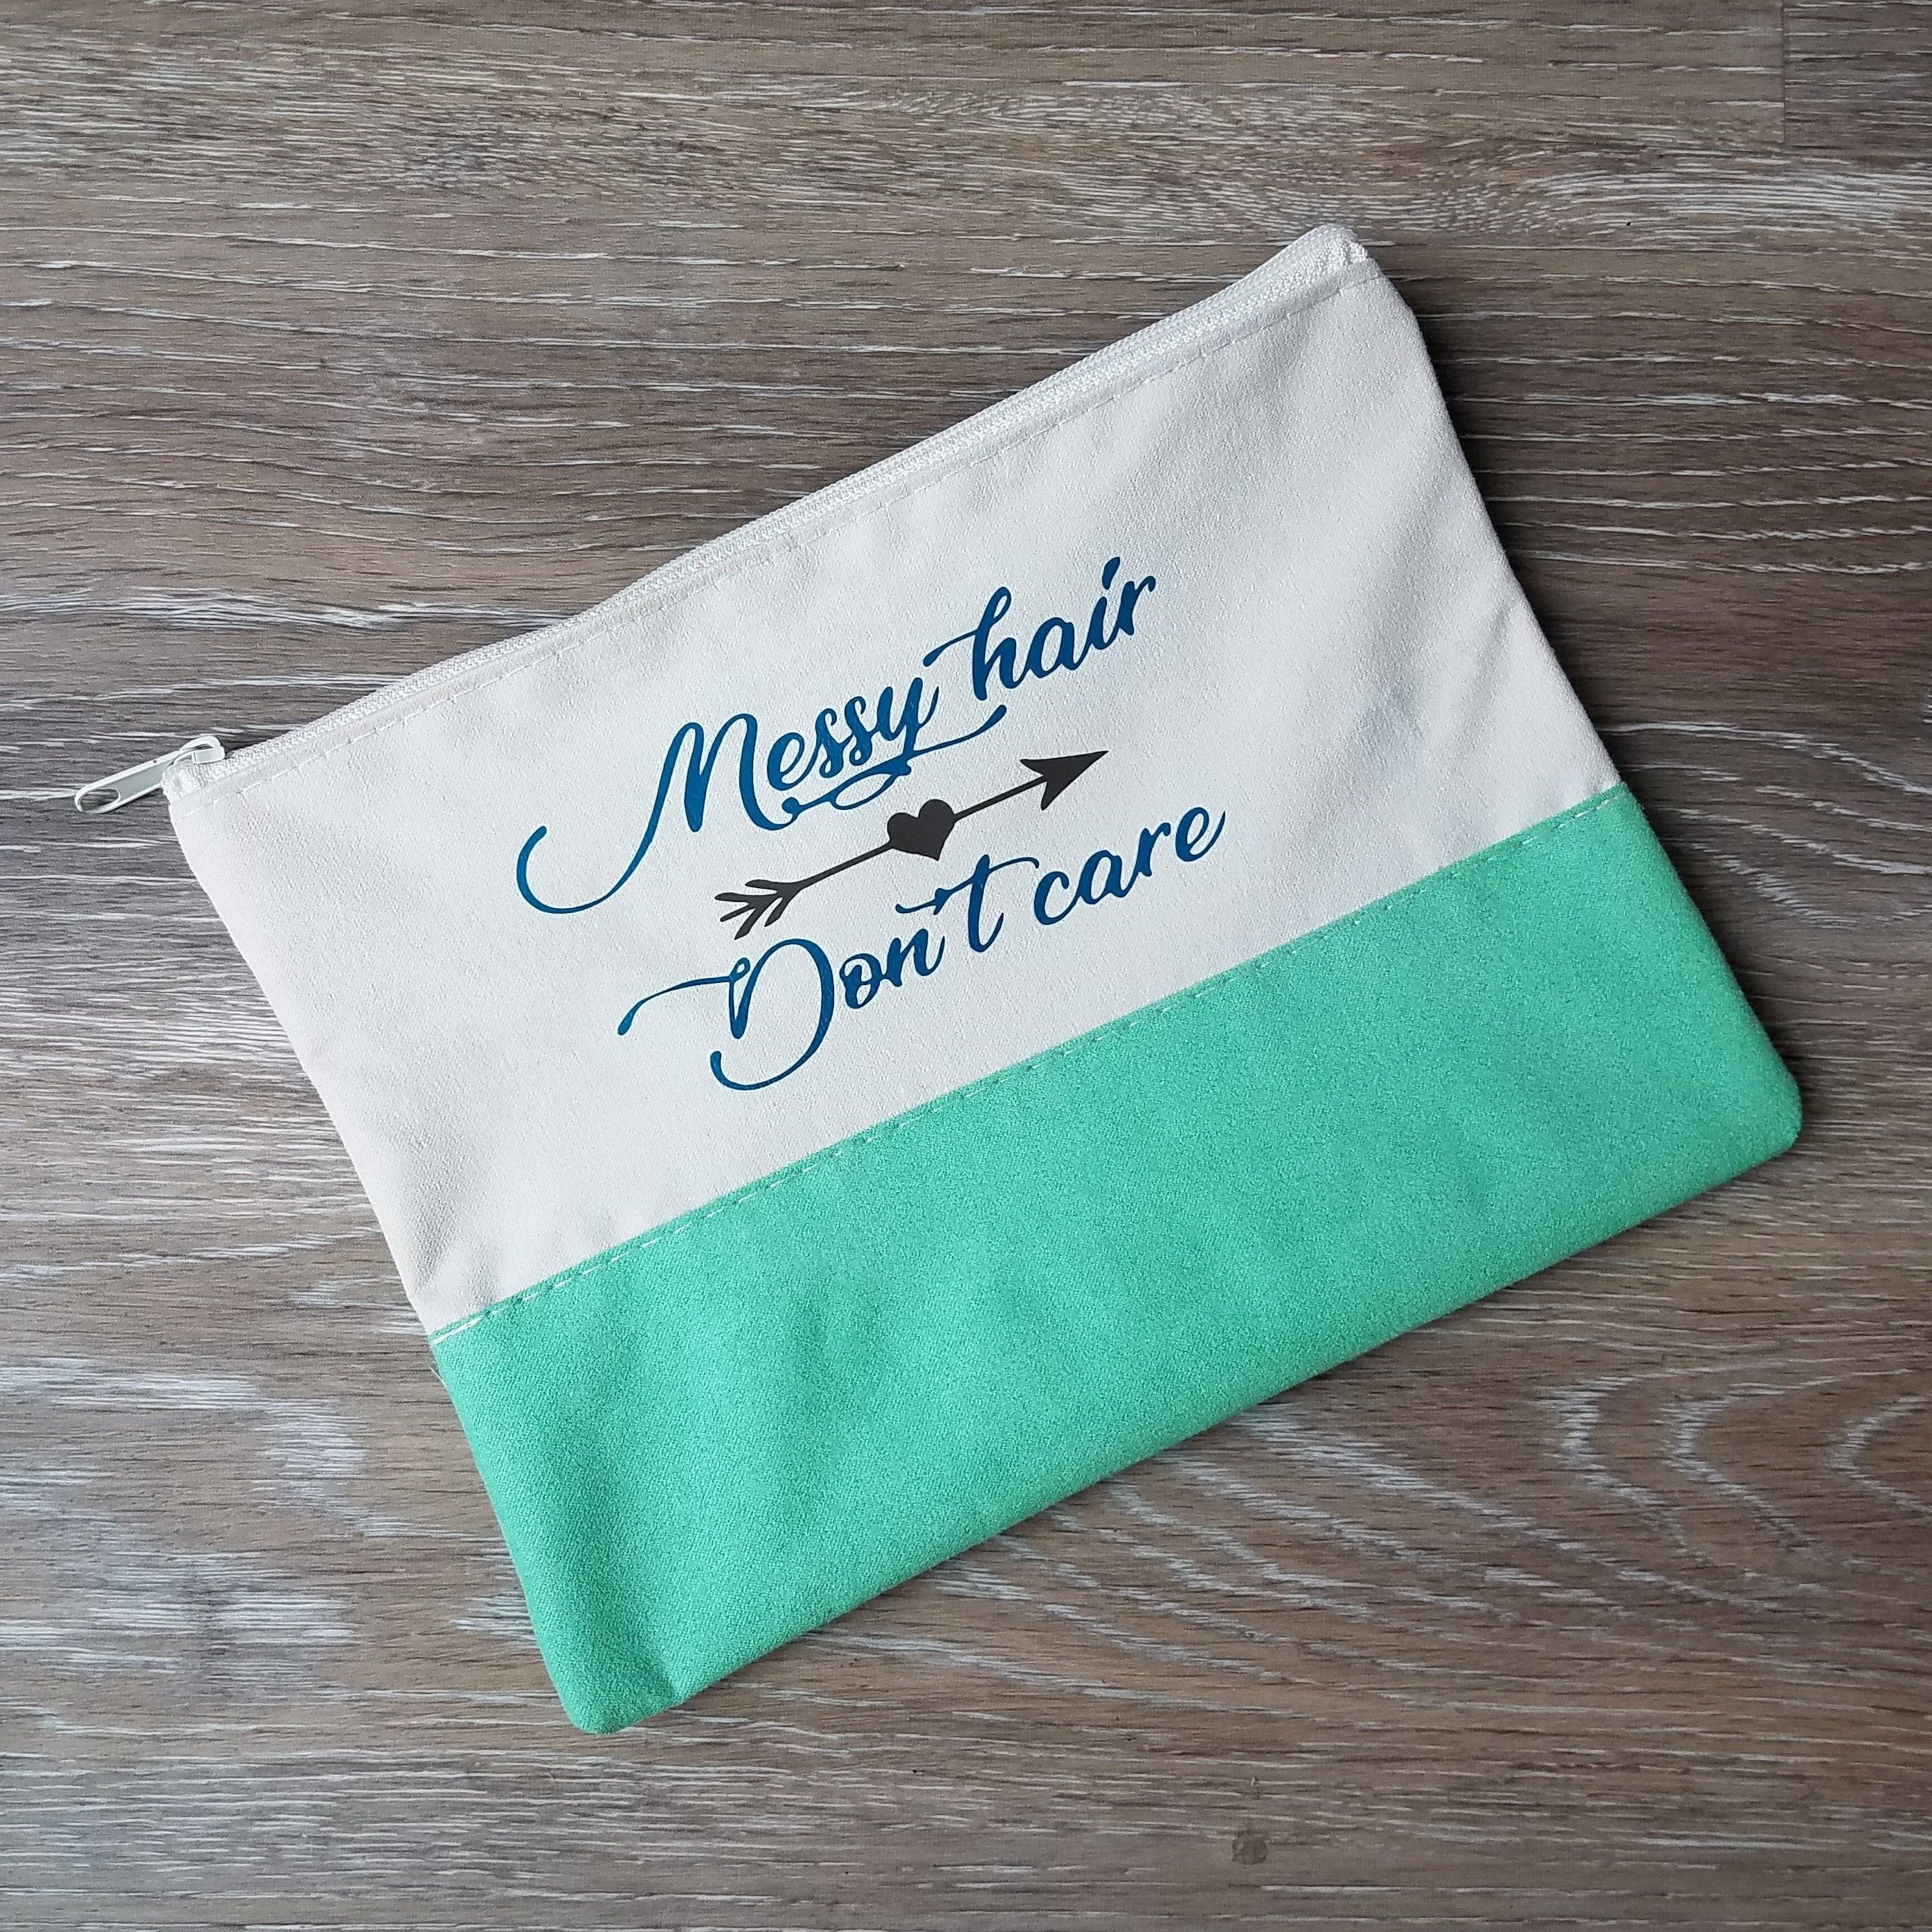 Messy Hair Don't Care Handmade Canvas Makeup Bag in my